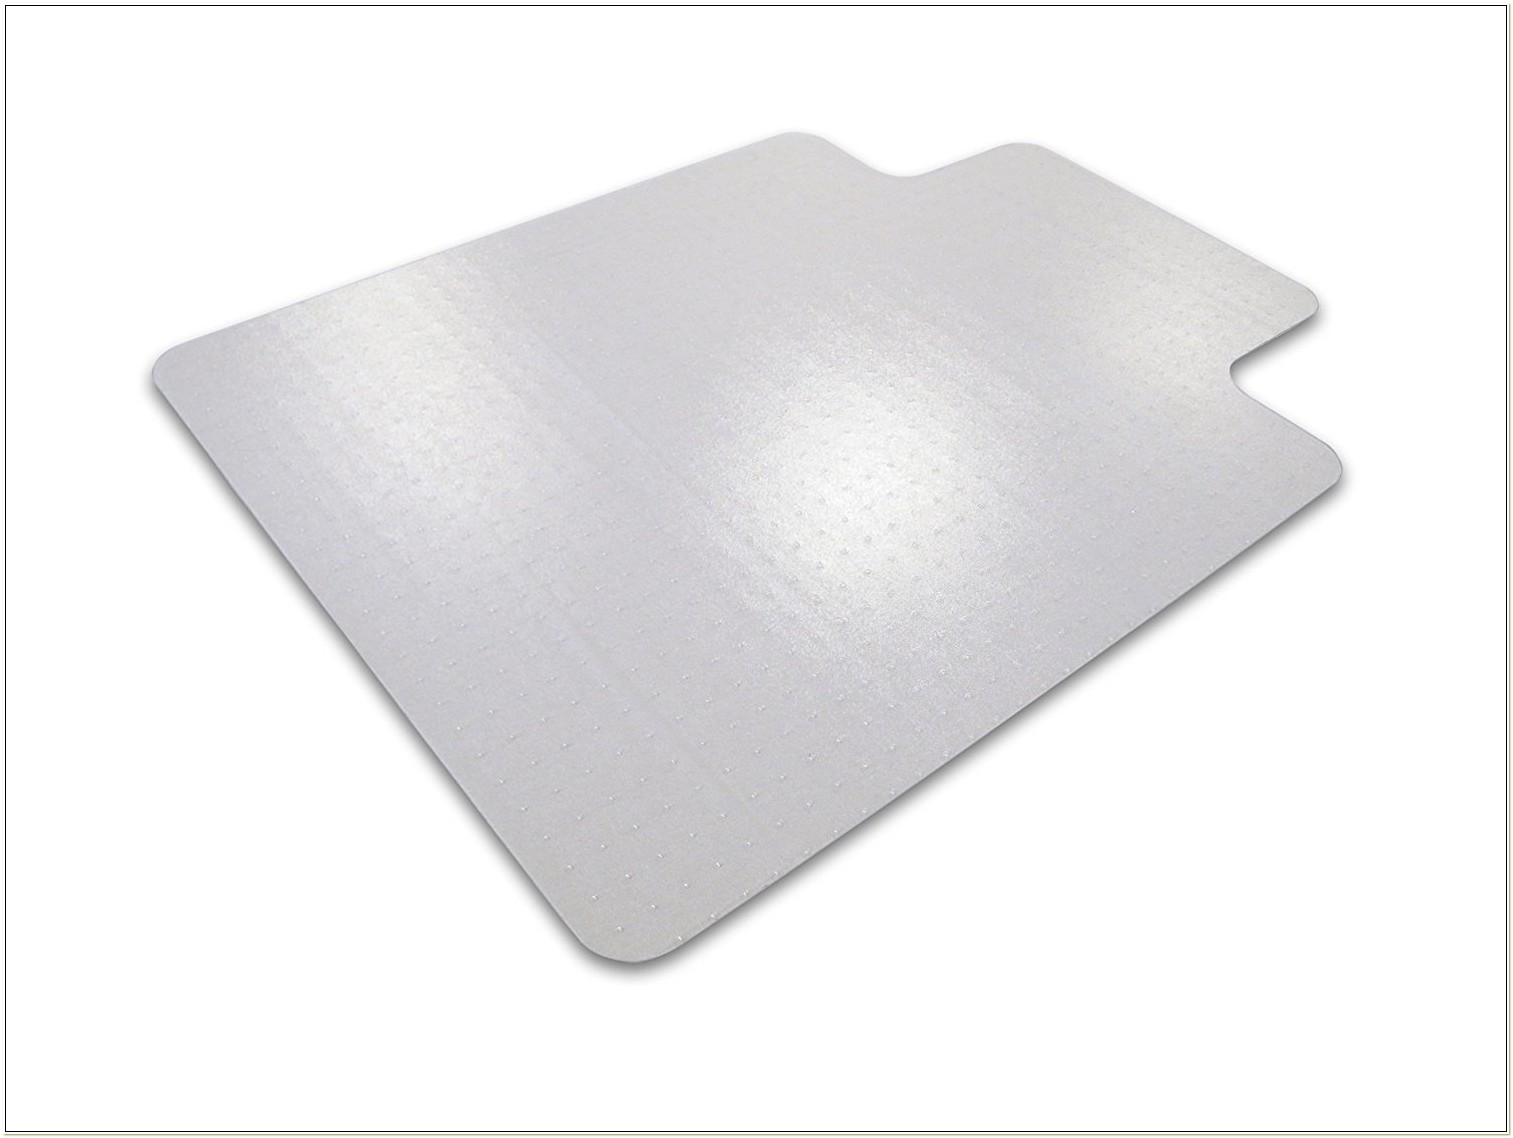 Polycarbonate Chair Mat For Plush Pile Carpets